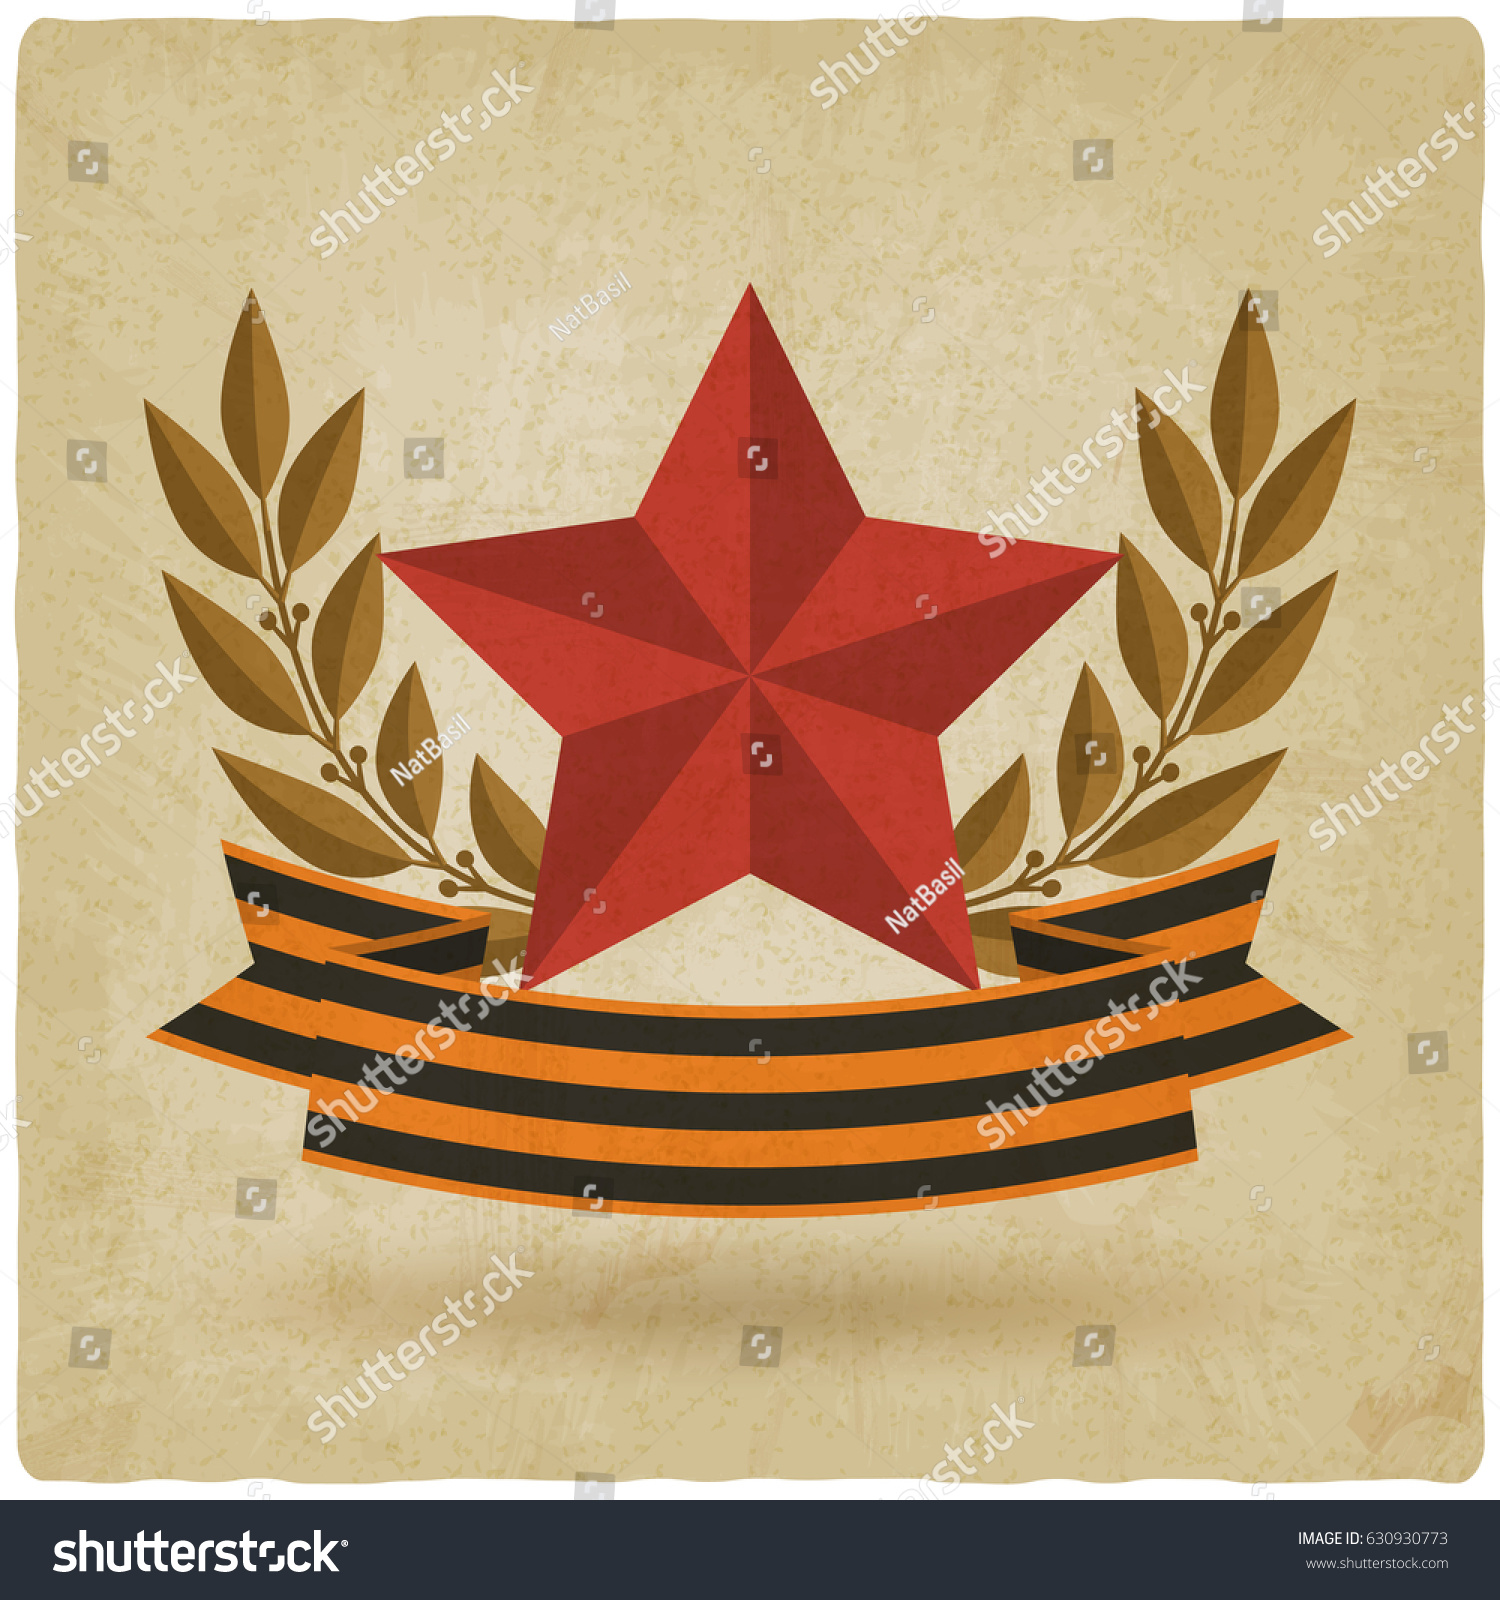 Victory day symbols star ribbon old stock vector 630930773 victory day symbols star with ribbon old background vector illustration eps 10 biocorpaavc